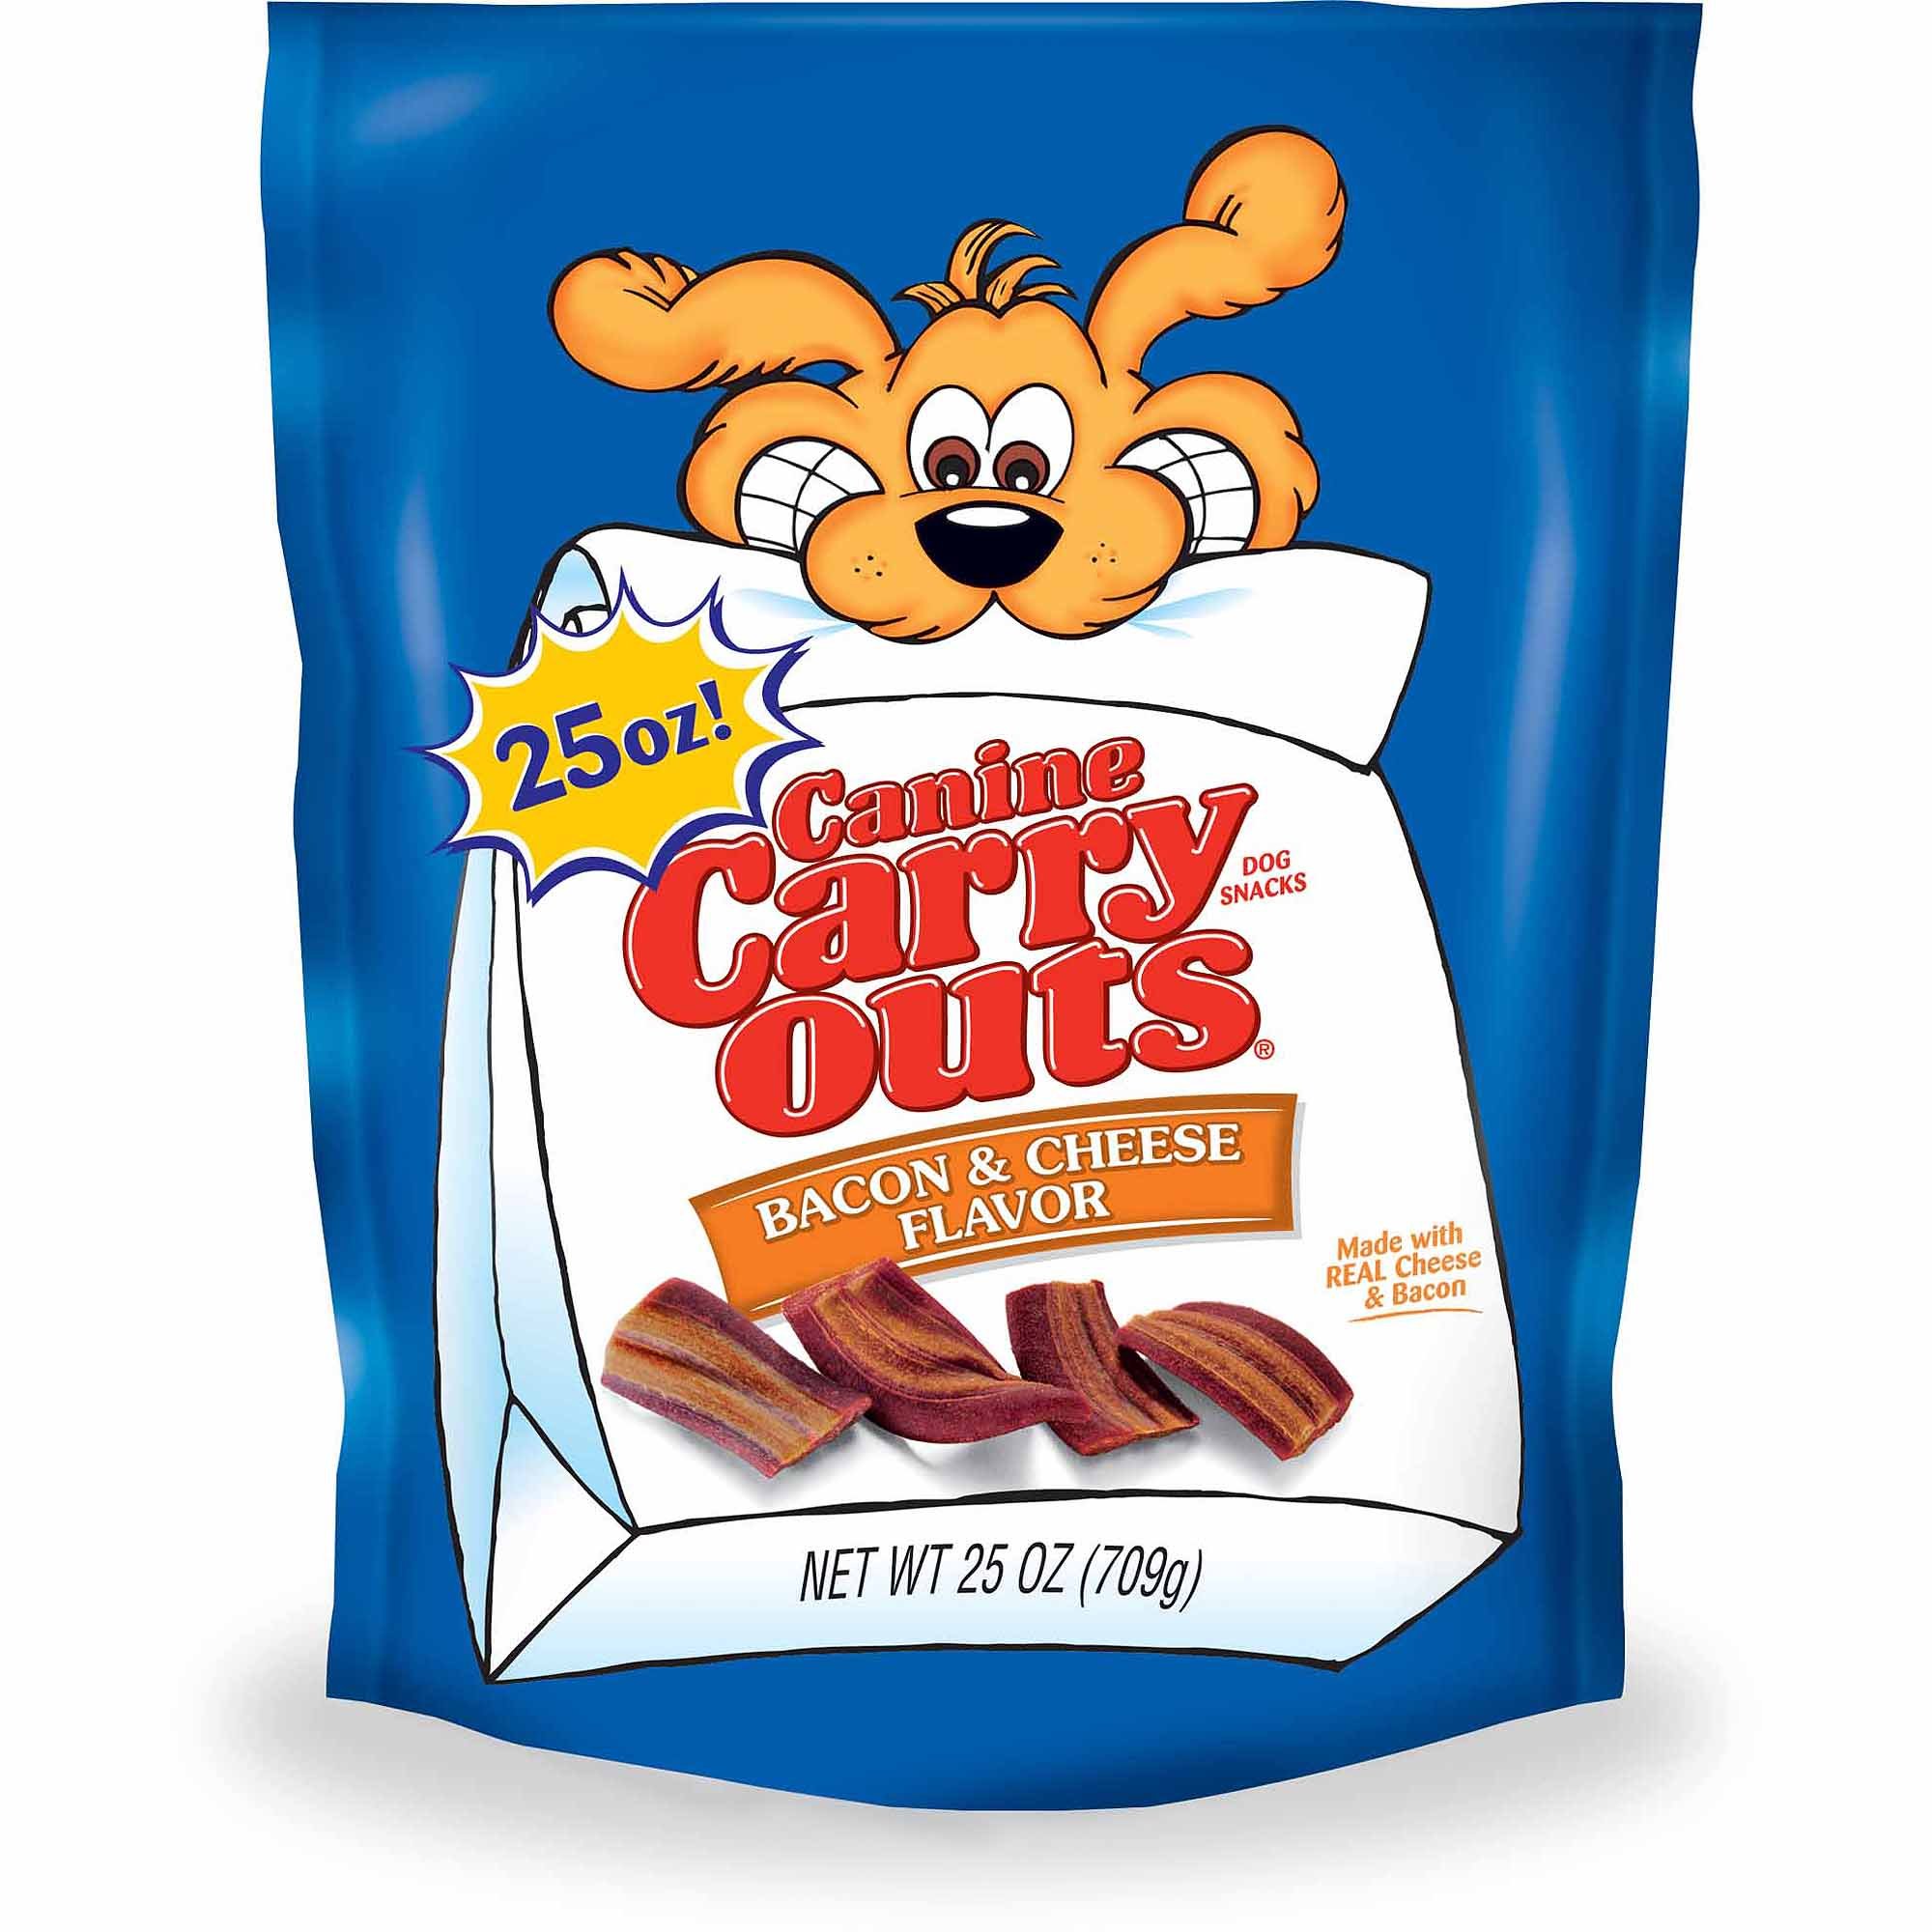 Canine Carry Outs Bacon and Cheese Flavor Dog Snacks, 25 oz